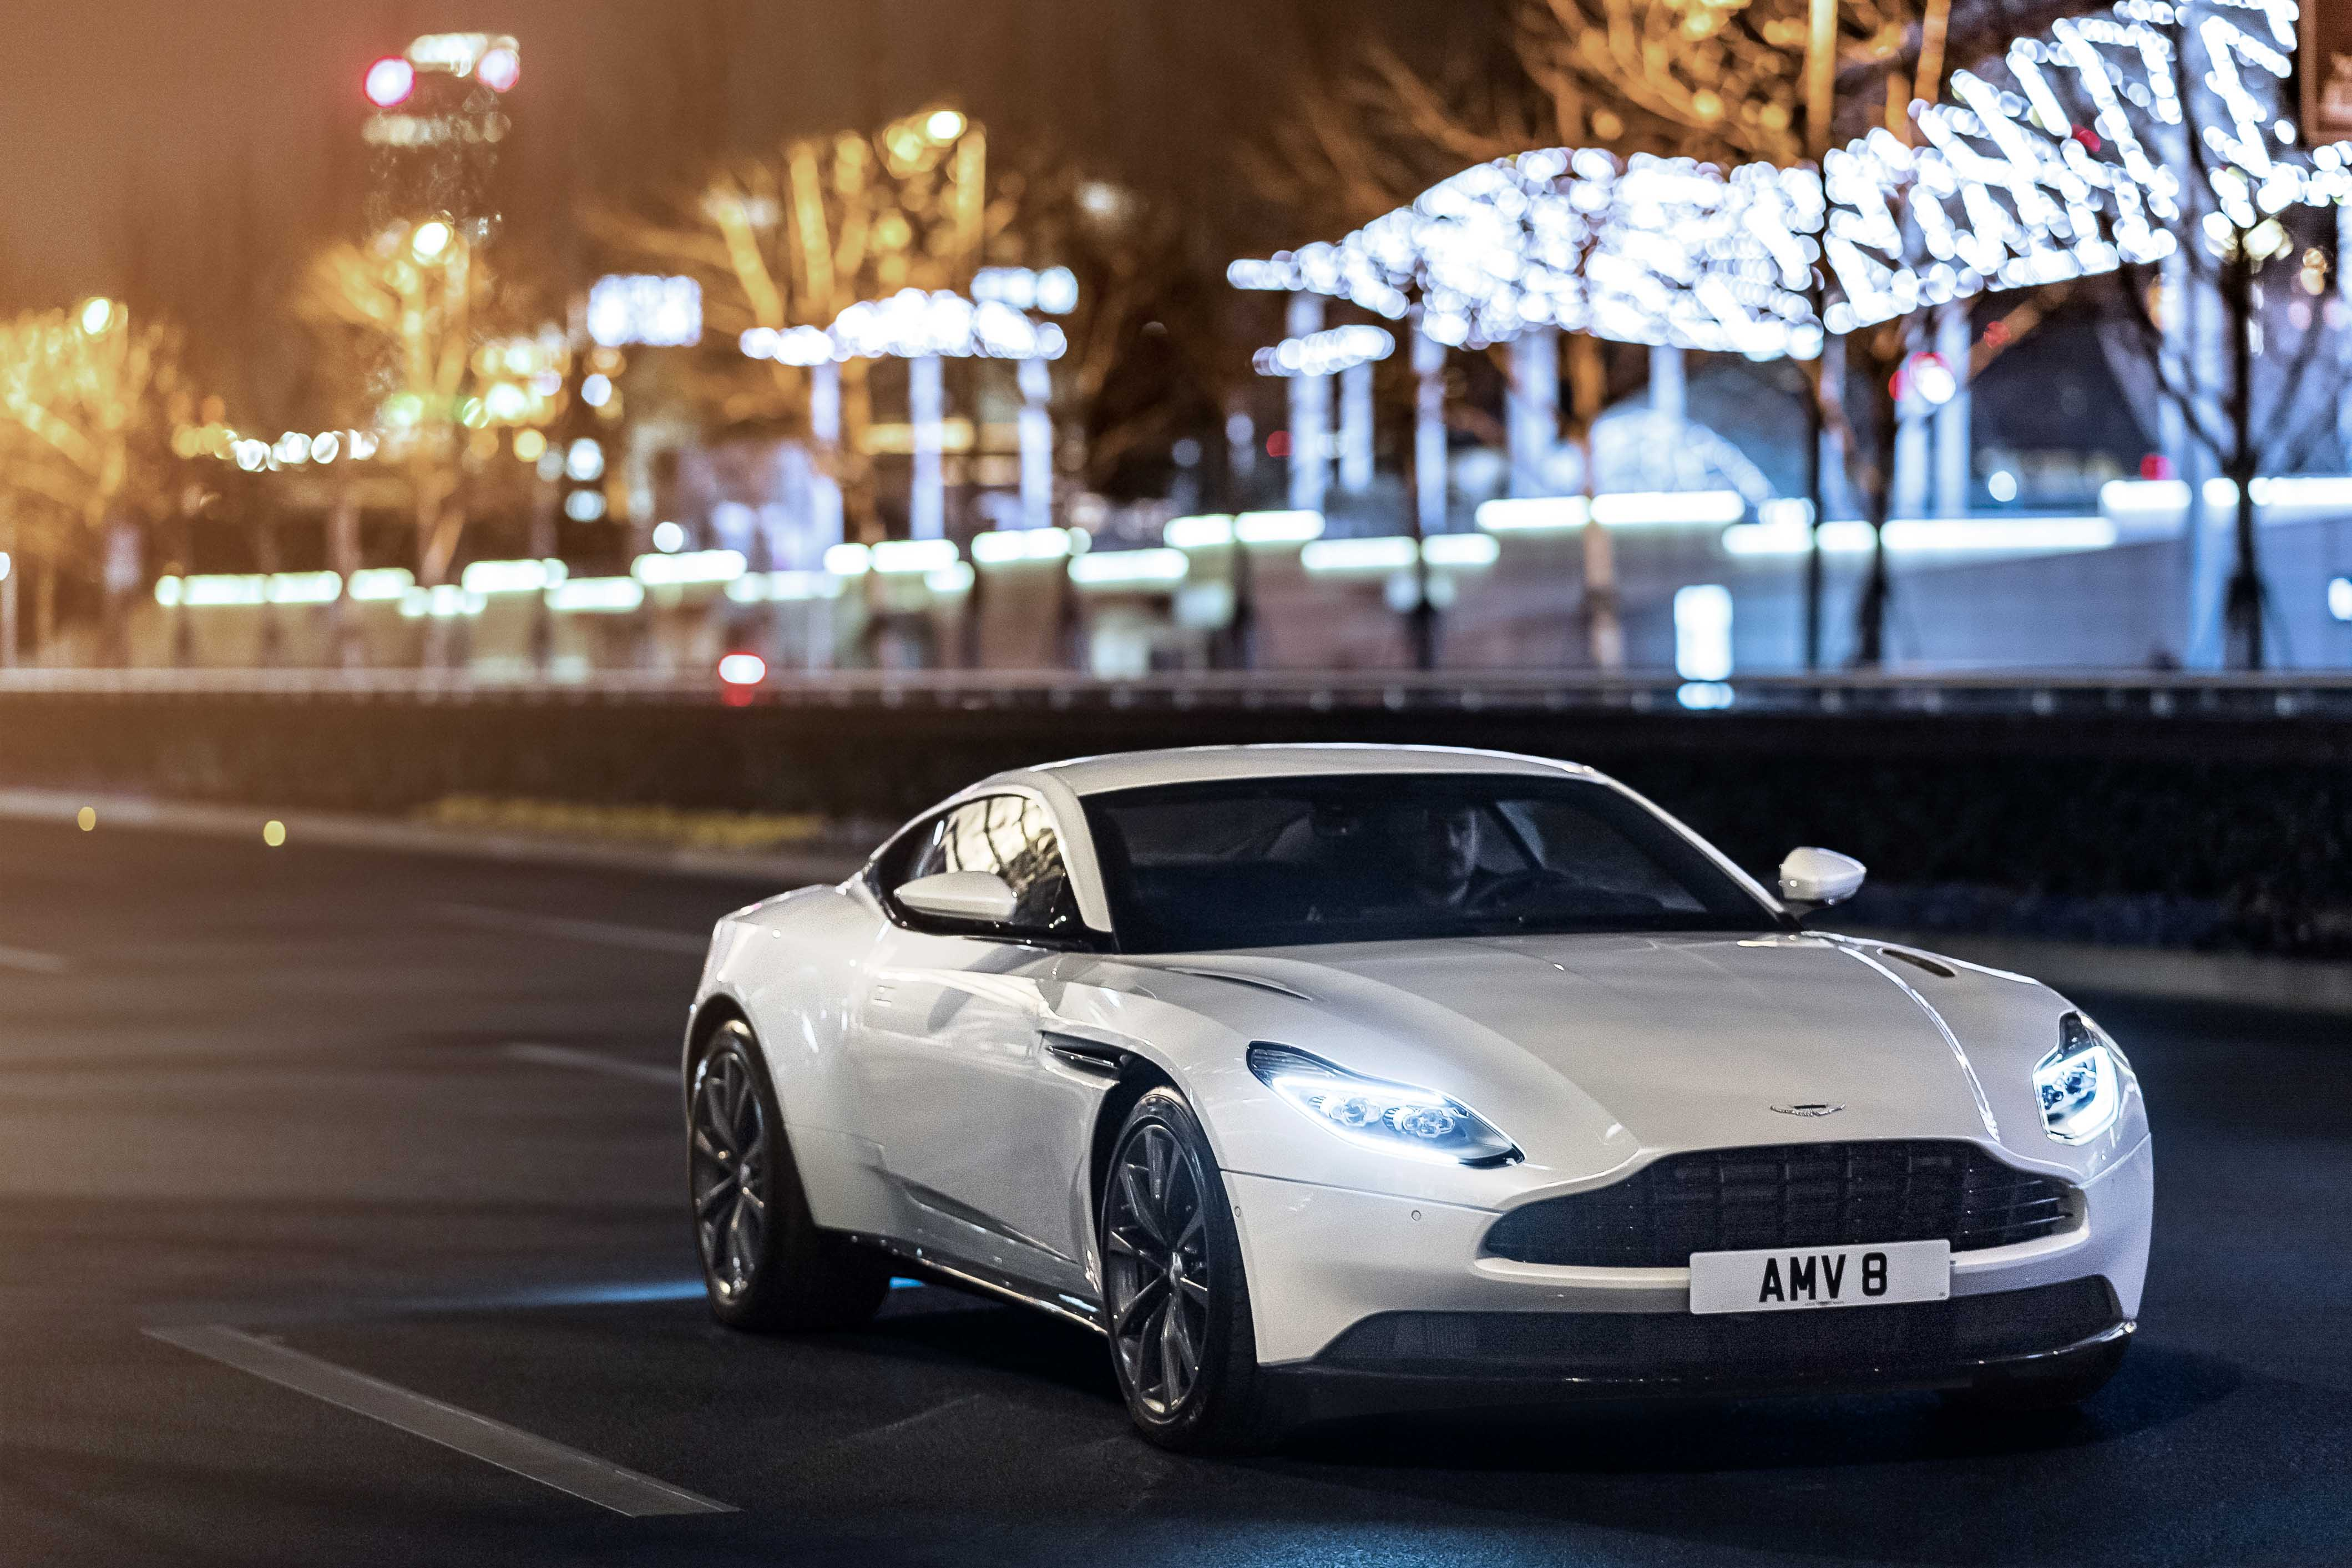 Even without all those extra cylinders, the DB11 V-8 delivers the performance and luxury one expects of a proper British gran turismo.